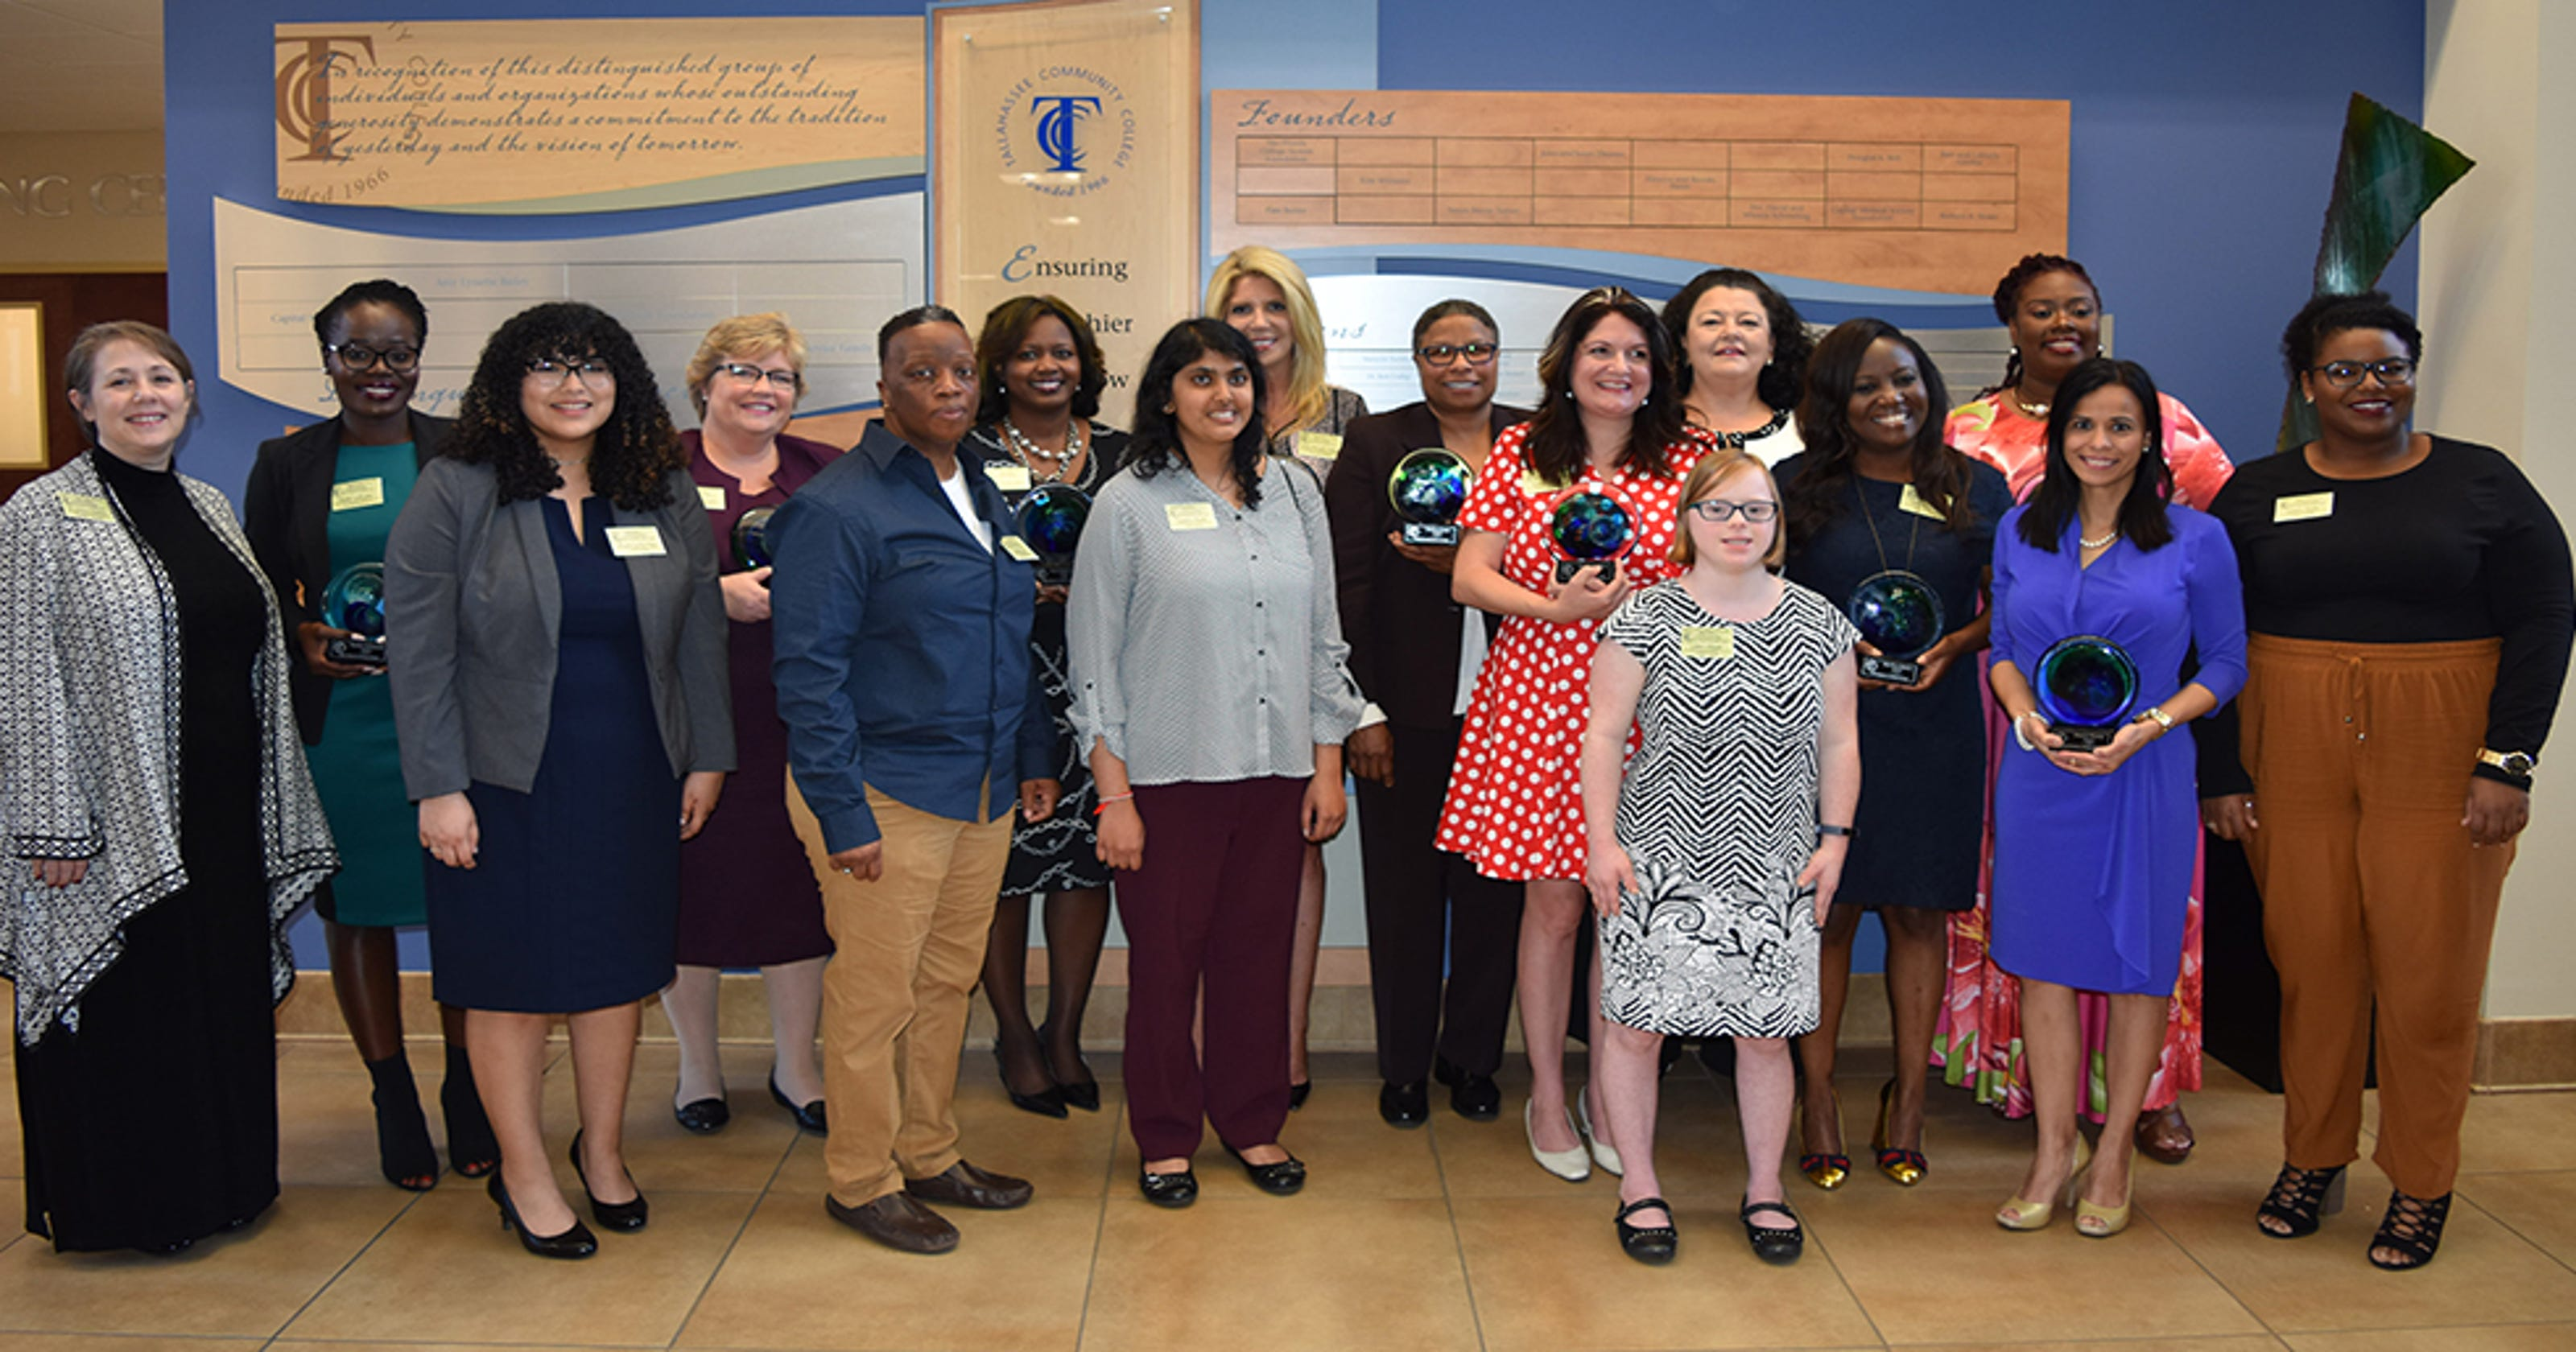 TCC celebrates Women's History Month honorees